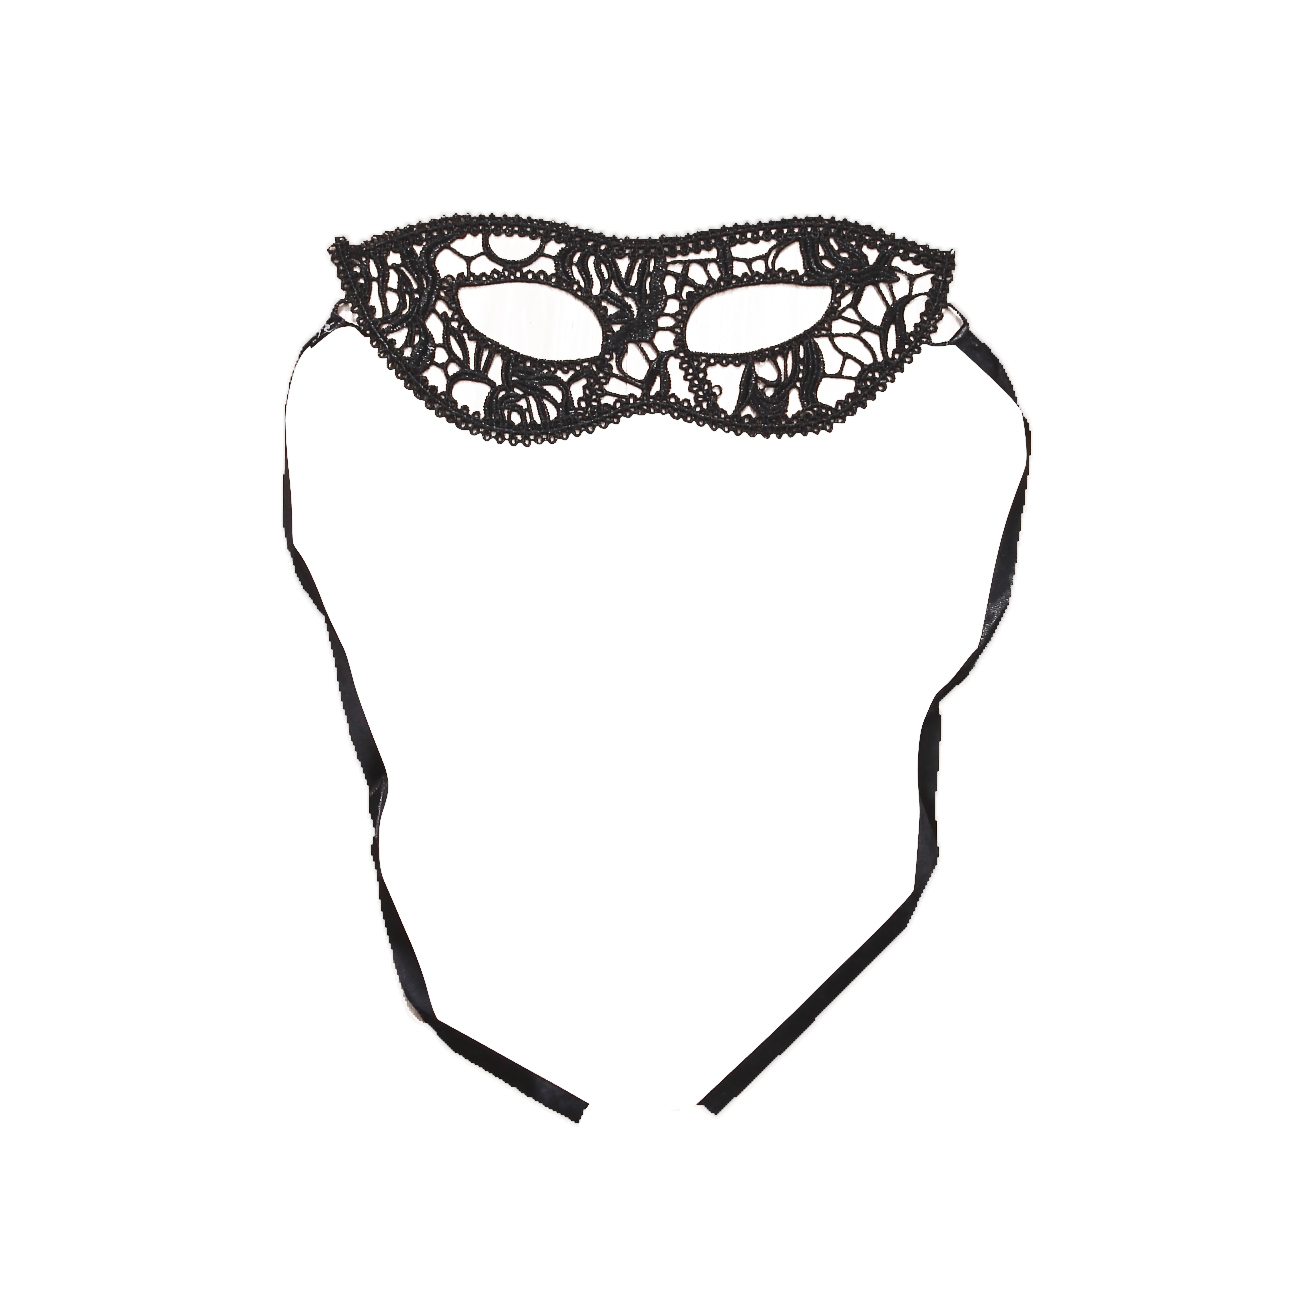 CANIS Цвет шампанского yeduo black sexy lady lace mask for masquerade halloween party fancy dress costume